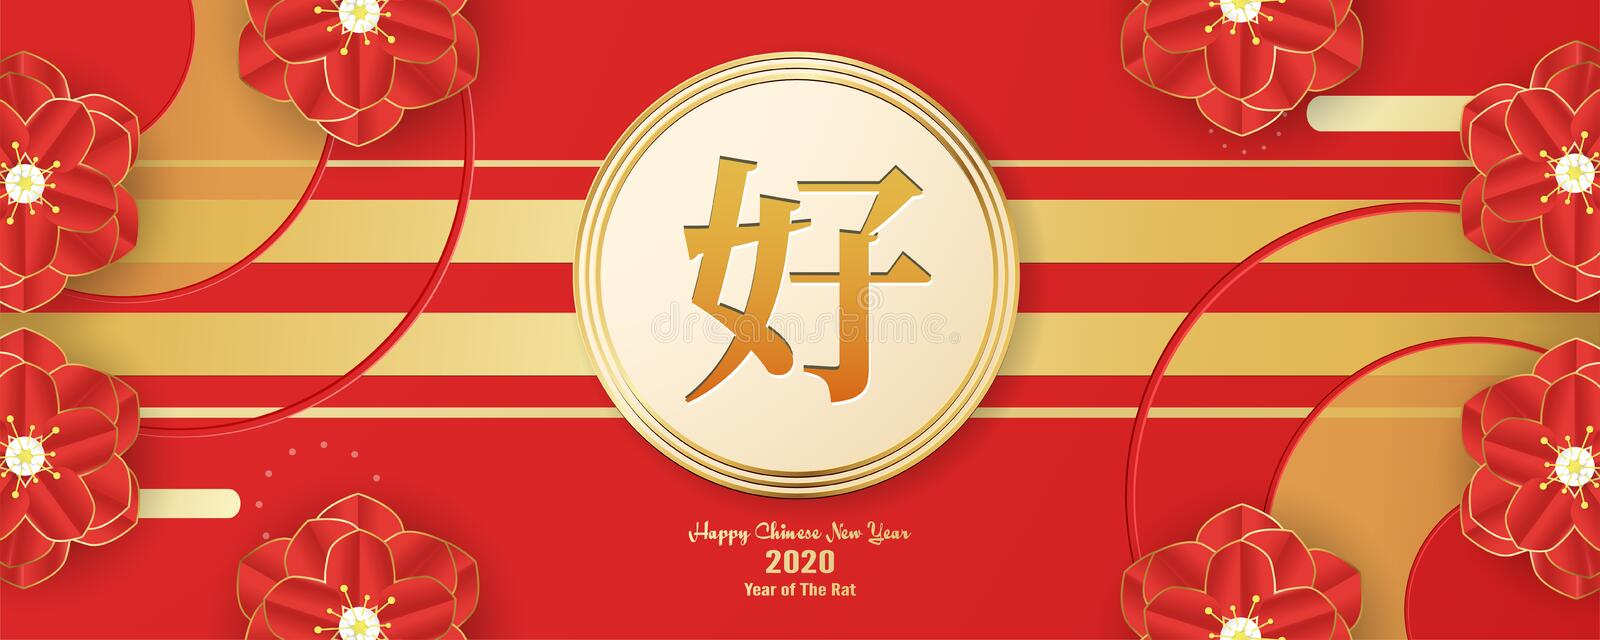 Happy Chinese new year 2020, year of the rat. Template design for cover, invitation, poster, flyer, premium packaging. Vector royalty free illustration